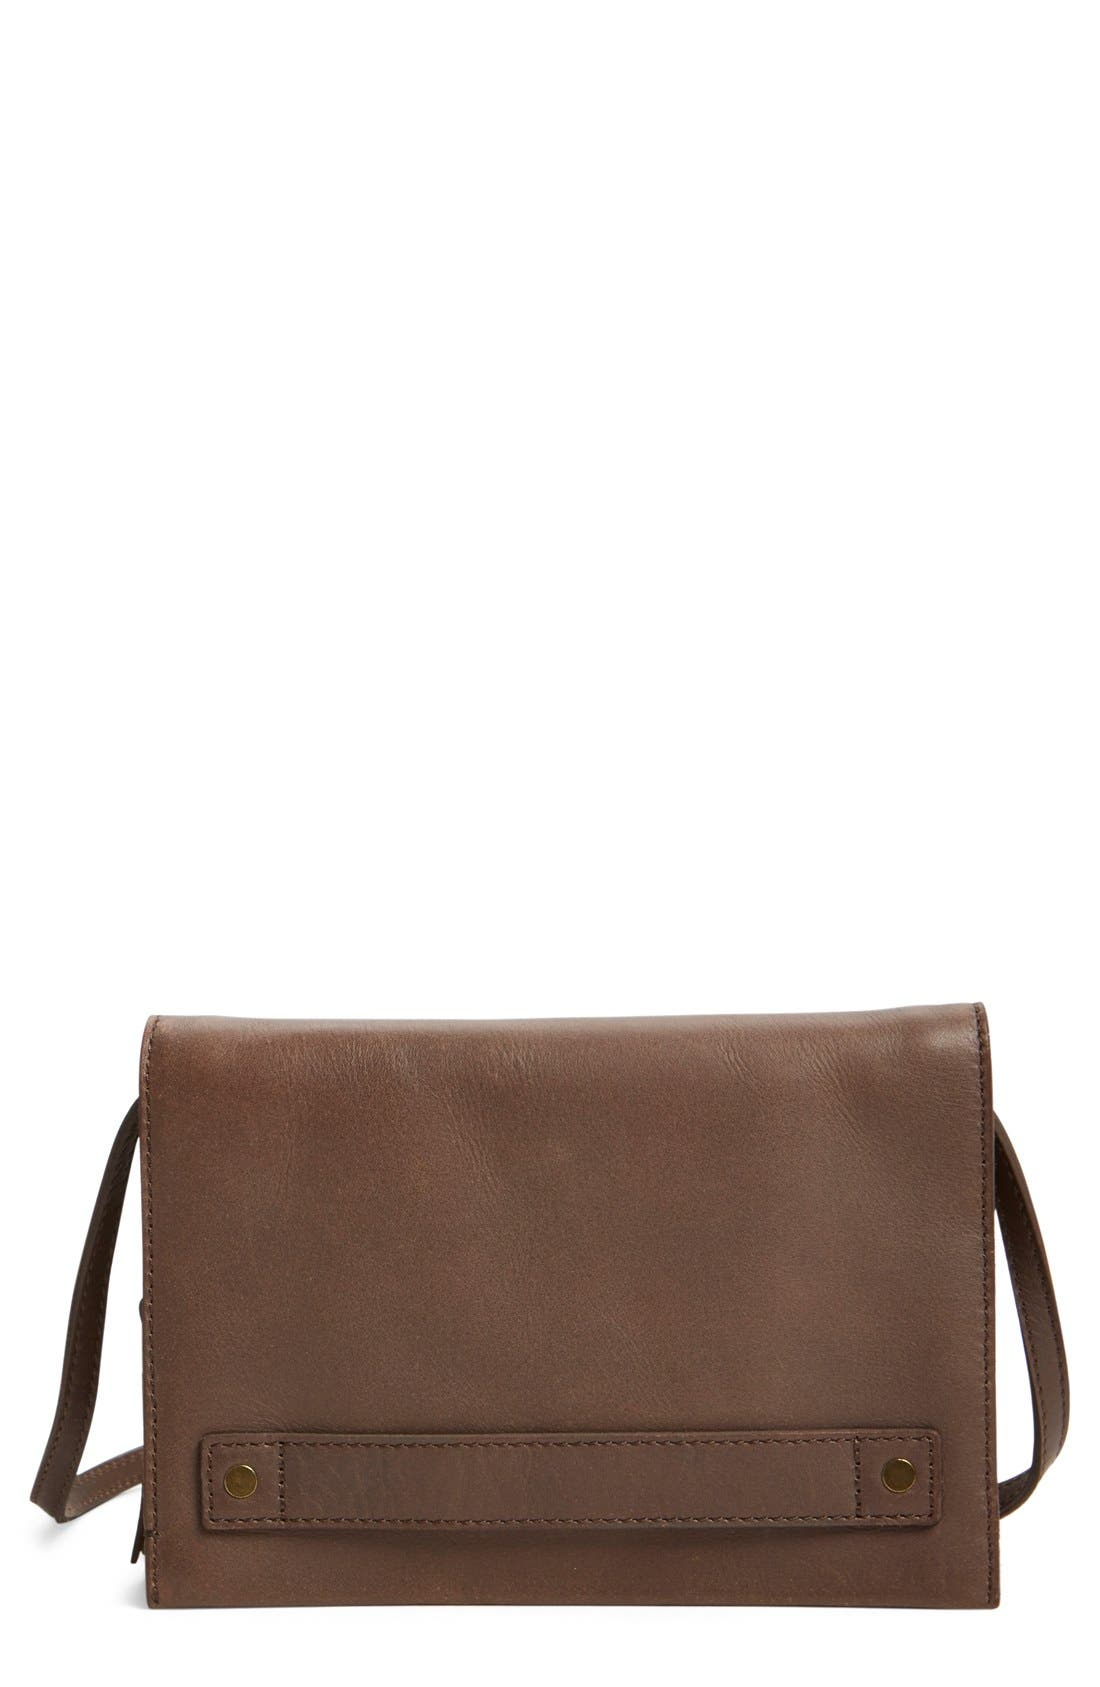 madewell leather crossbody bag nordstrom